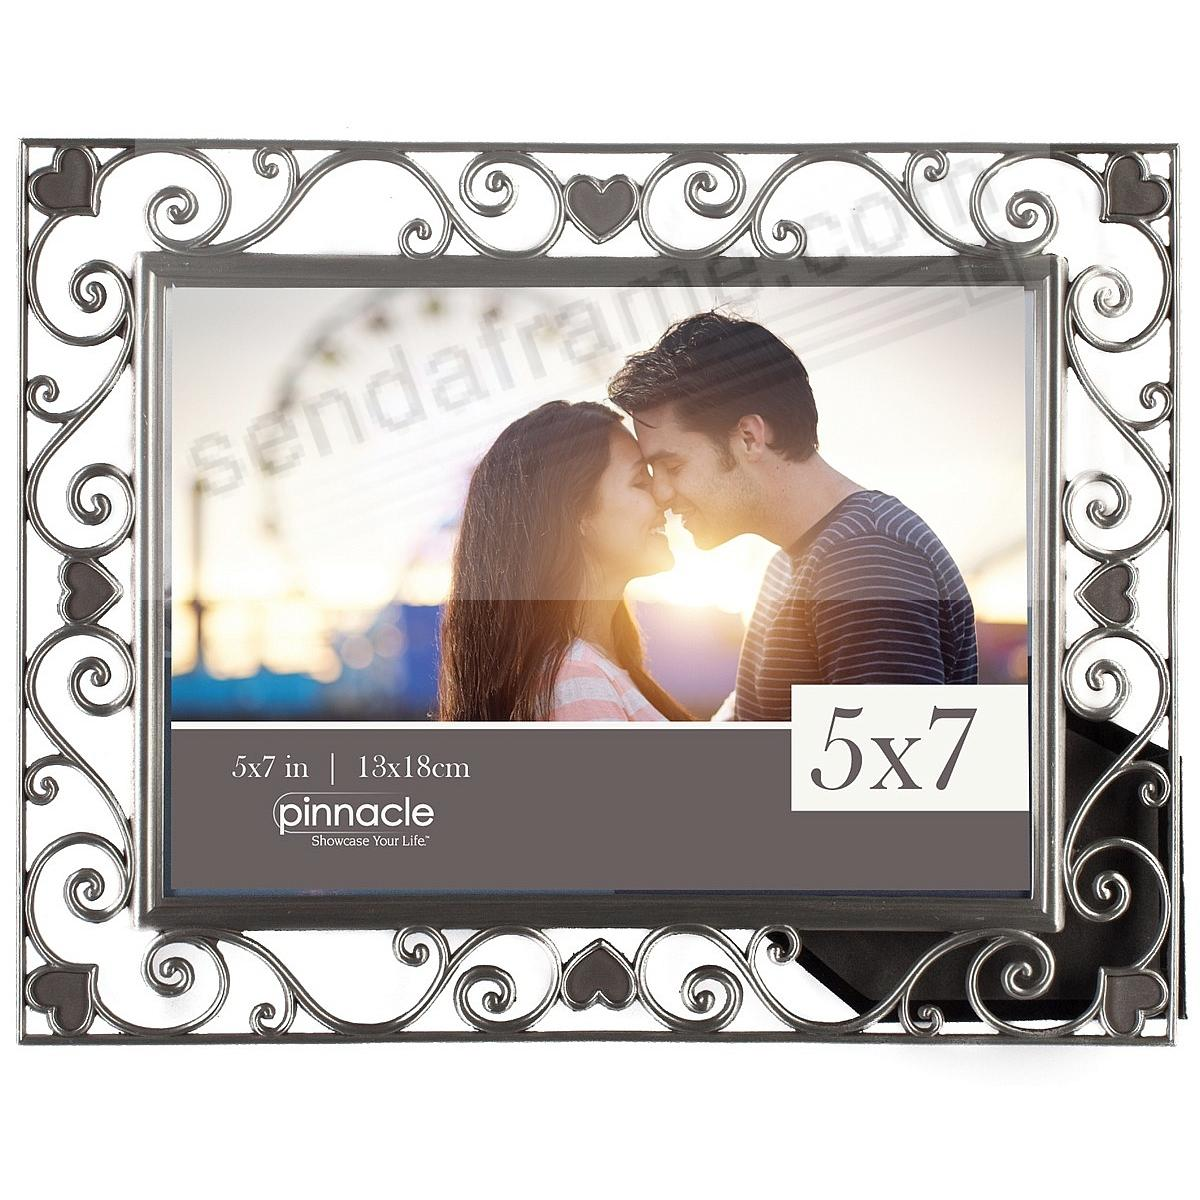 Picture frames photo albums personalized and engraved digital pewter scroll hearts 5x7 frame by pinnaclereg jeuxipadfo Choice Image